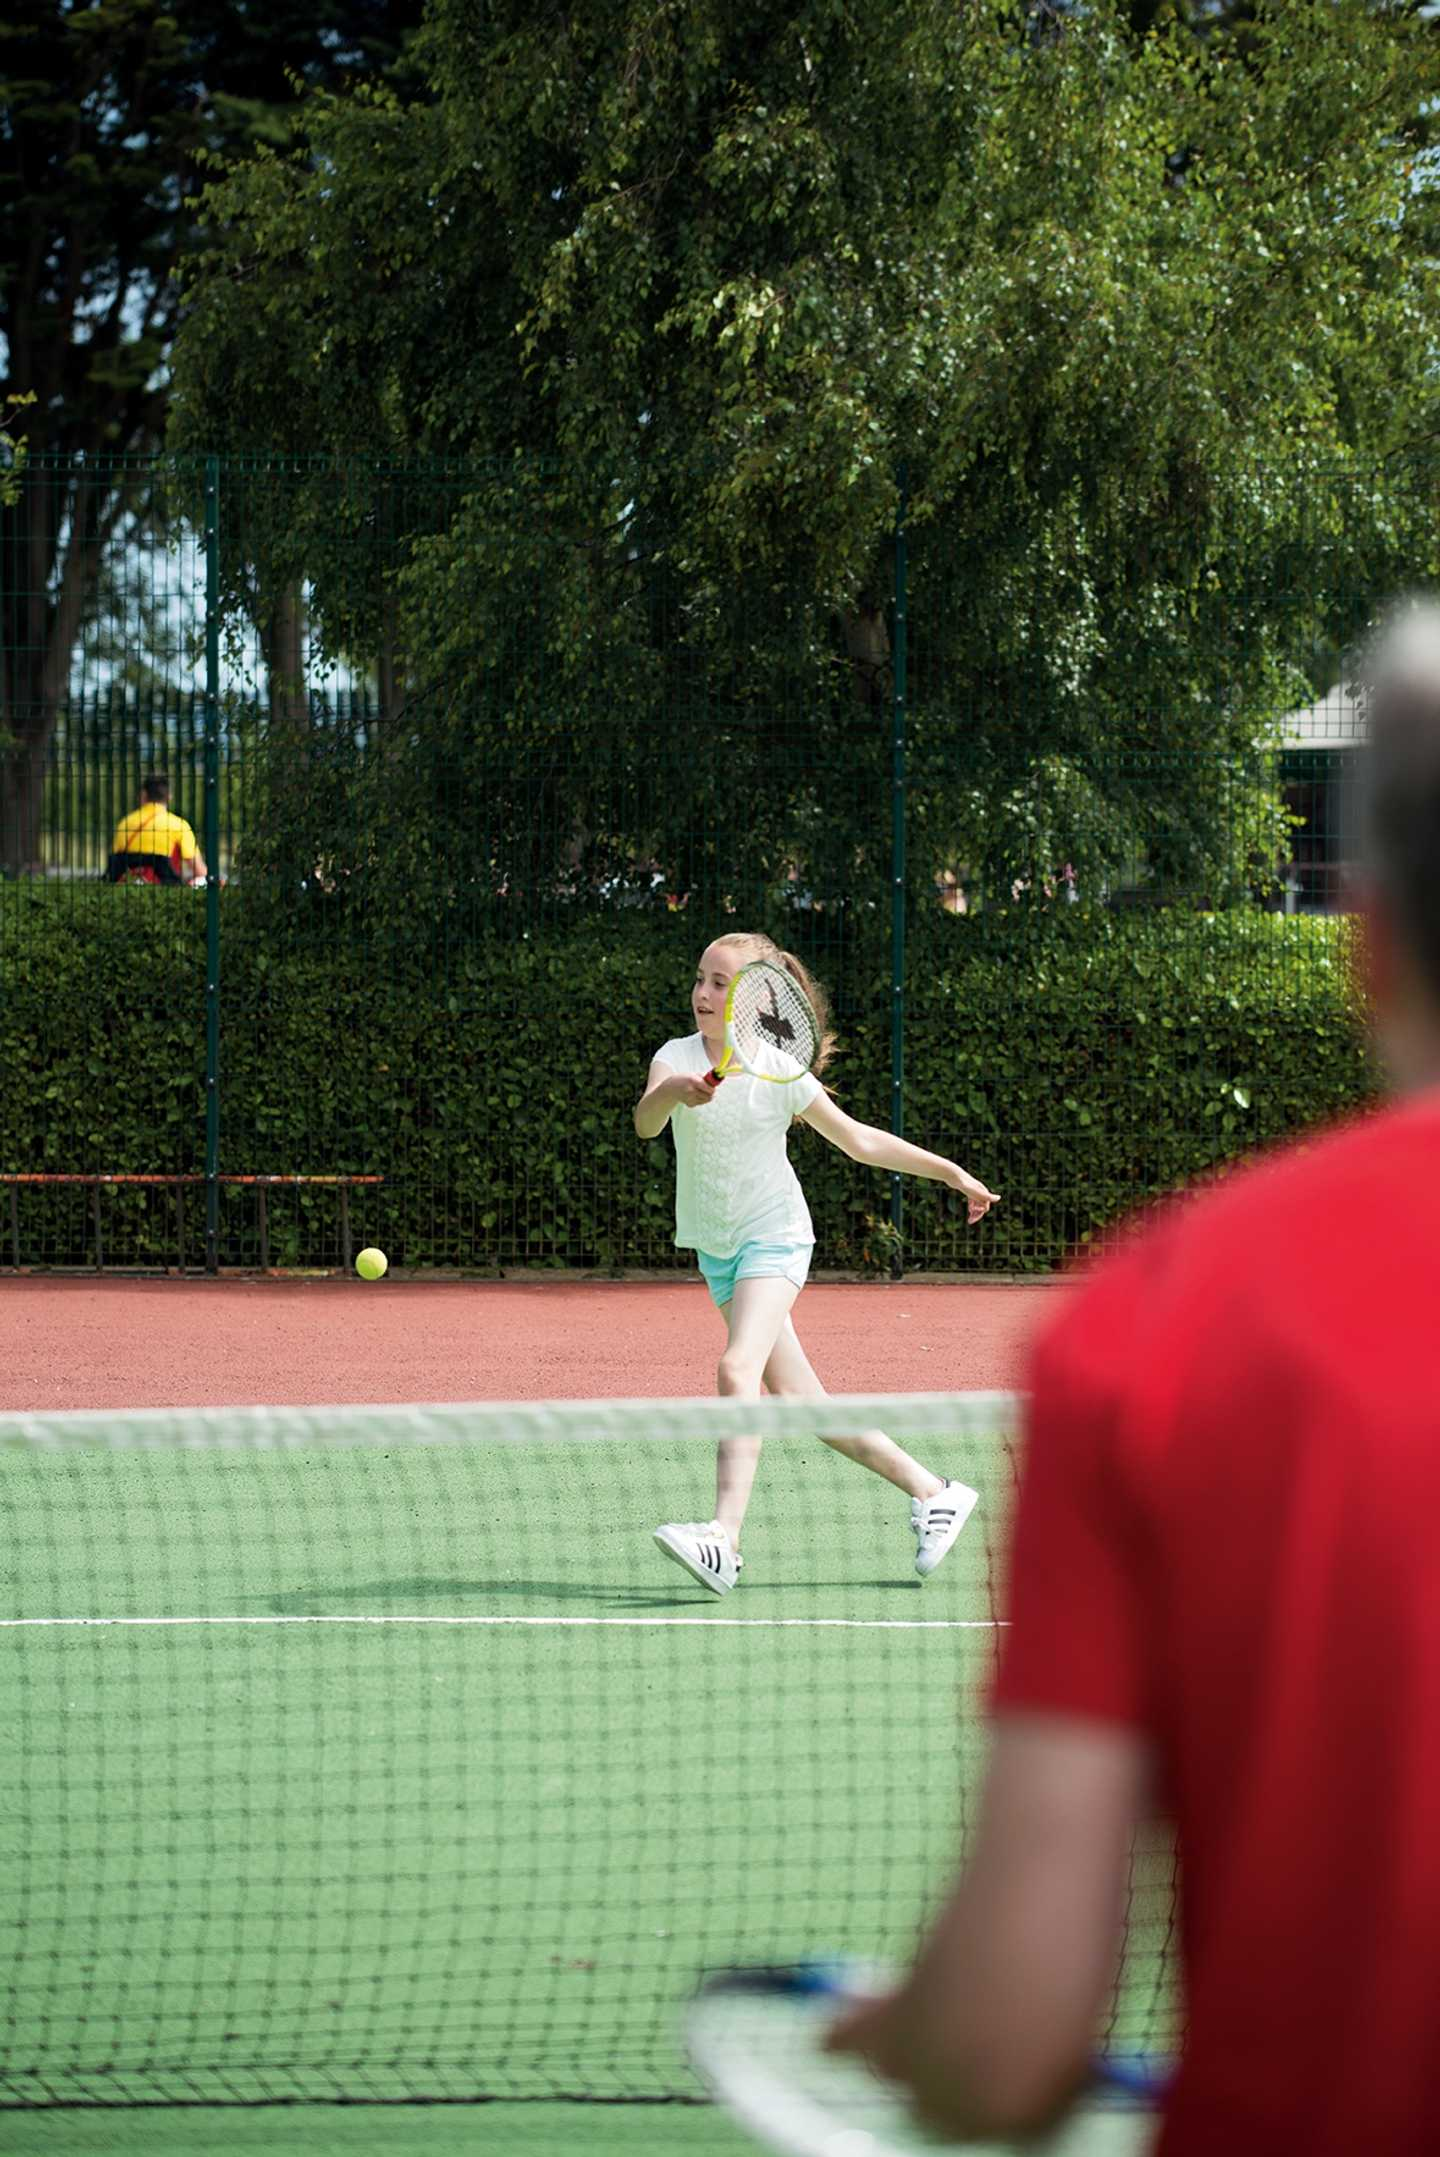 A father and daughter playing tennis